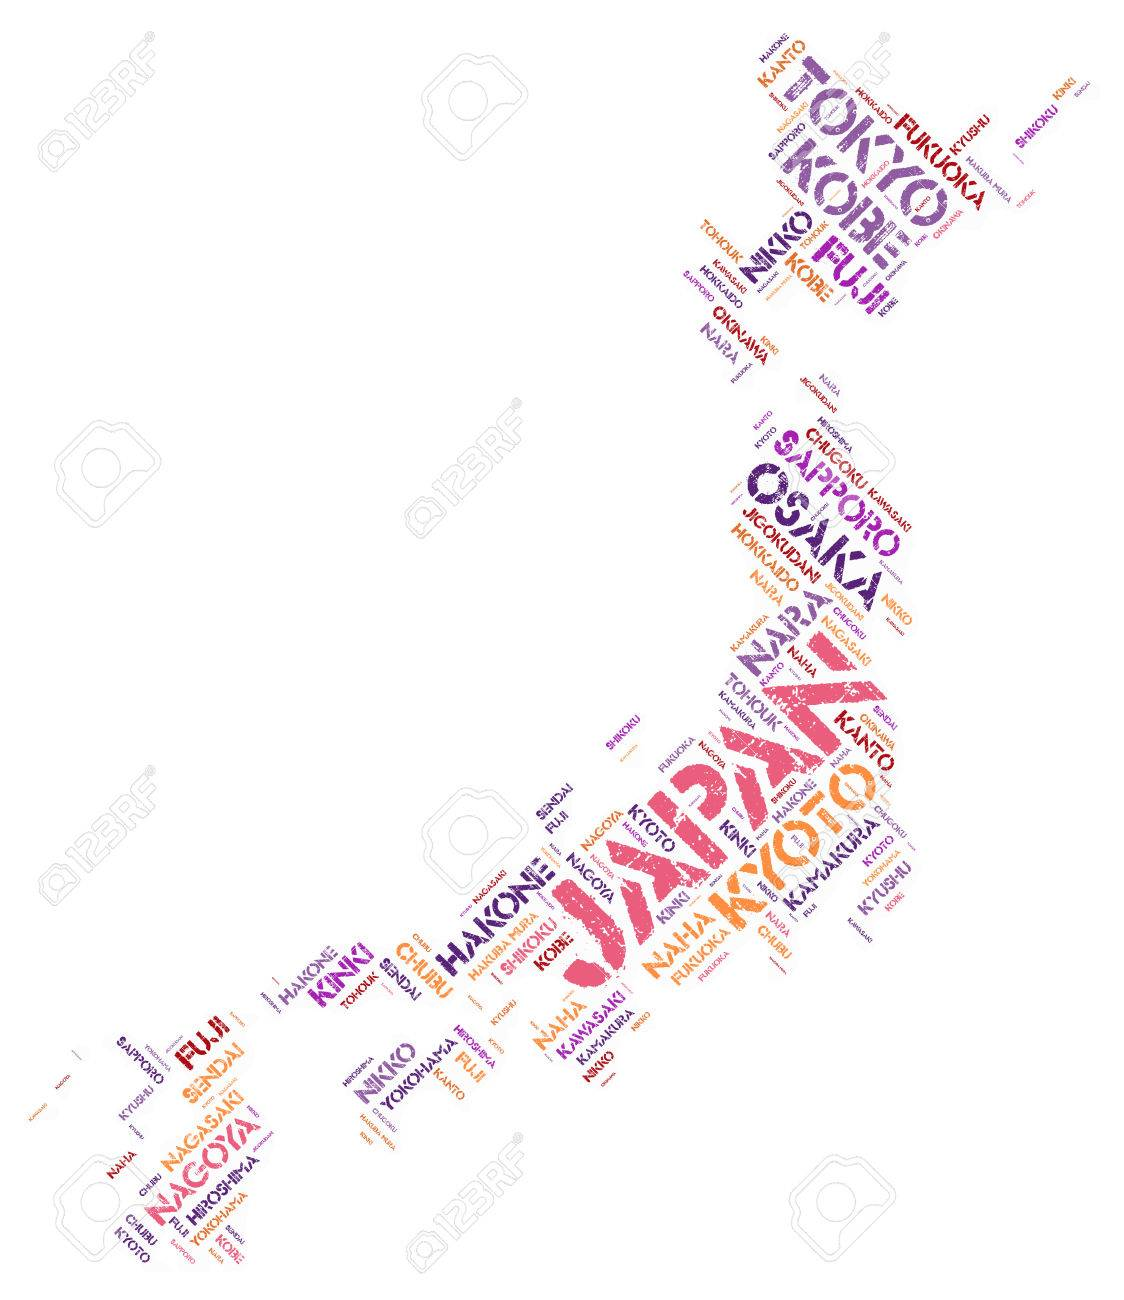 Japan Map Silhouette Word Cloud With Most Popular Travel - Japan map silhouette